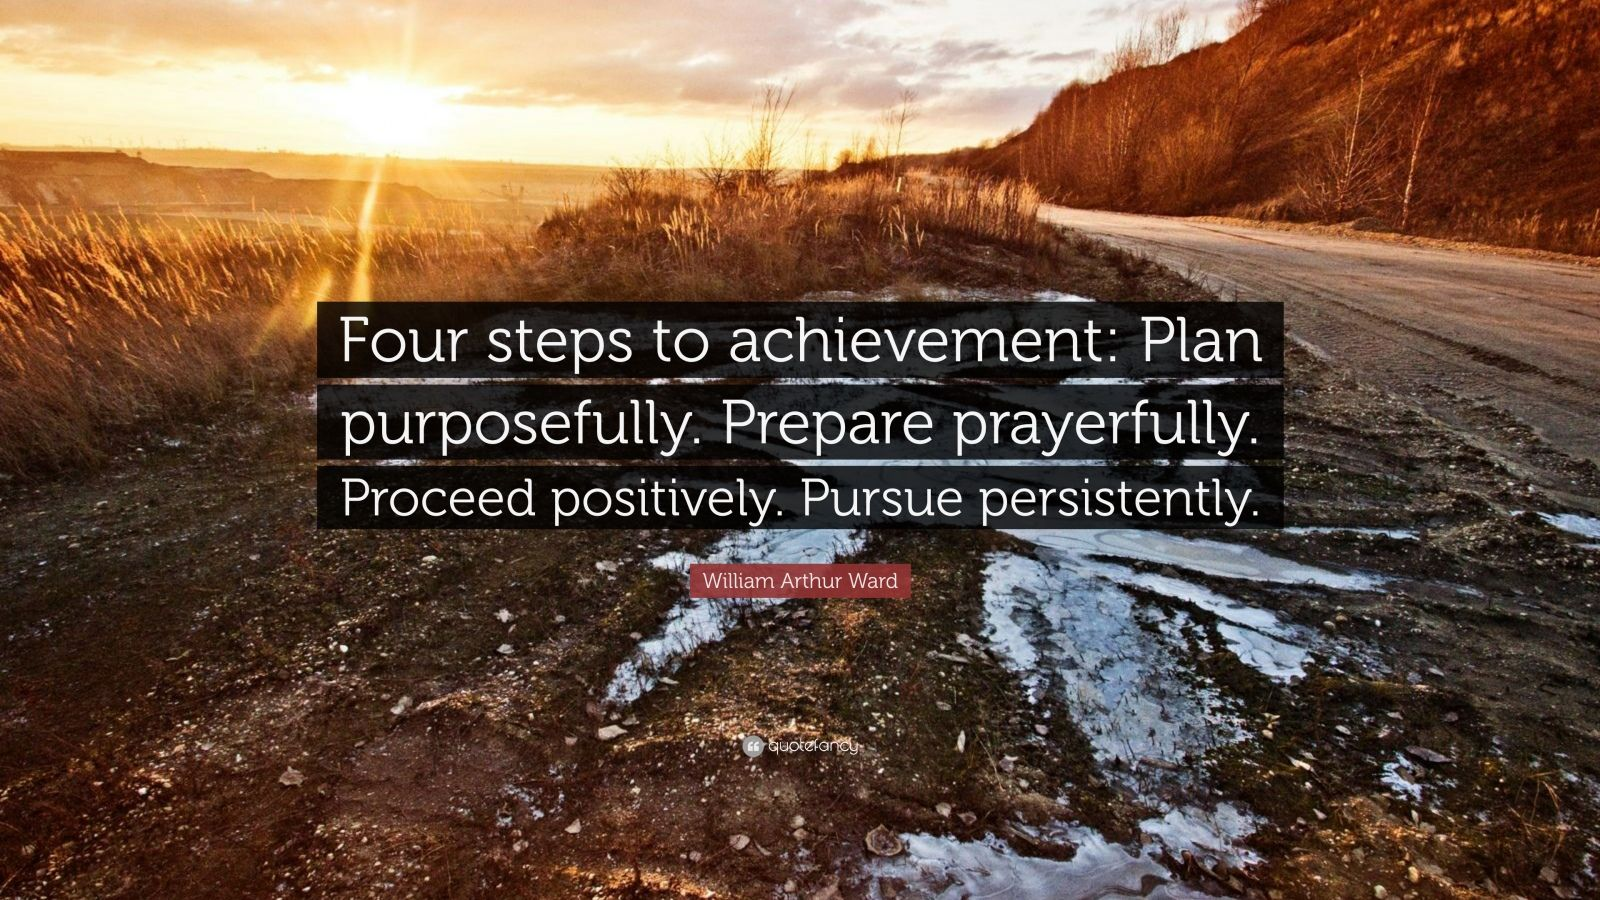 """William Arthur Ward Quote: """"Four steps to achievement: Plan purposefully. Prepare prayerfully. Proceed positively. Pursue persistently."""""""